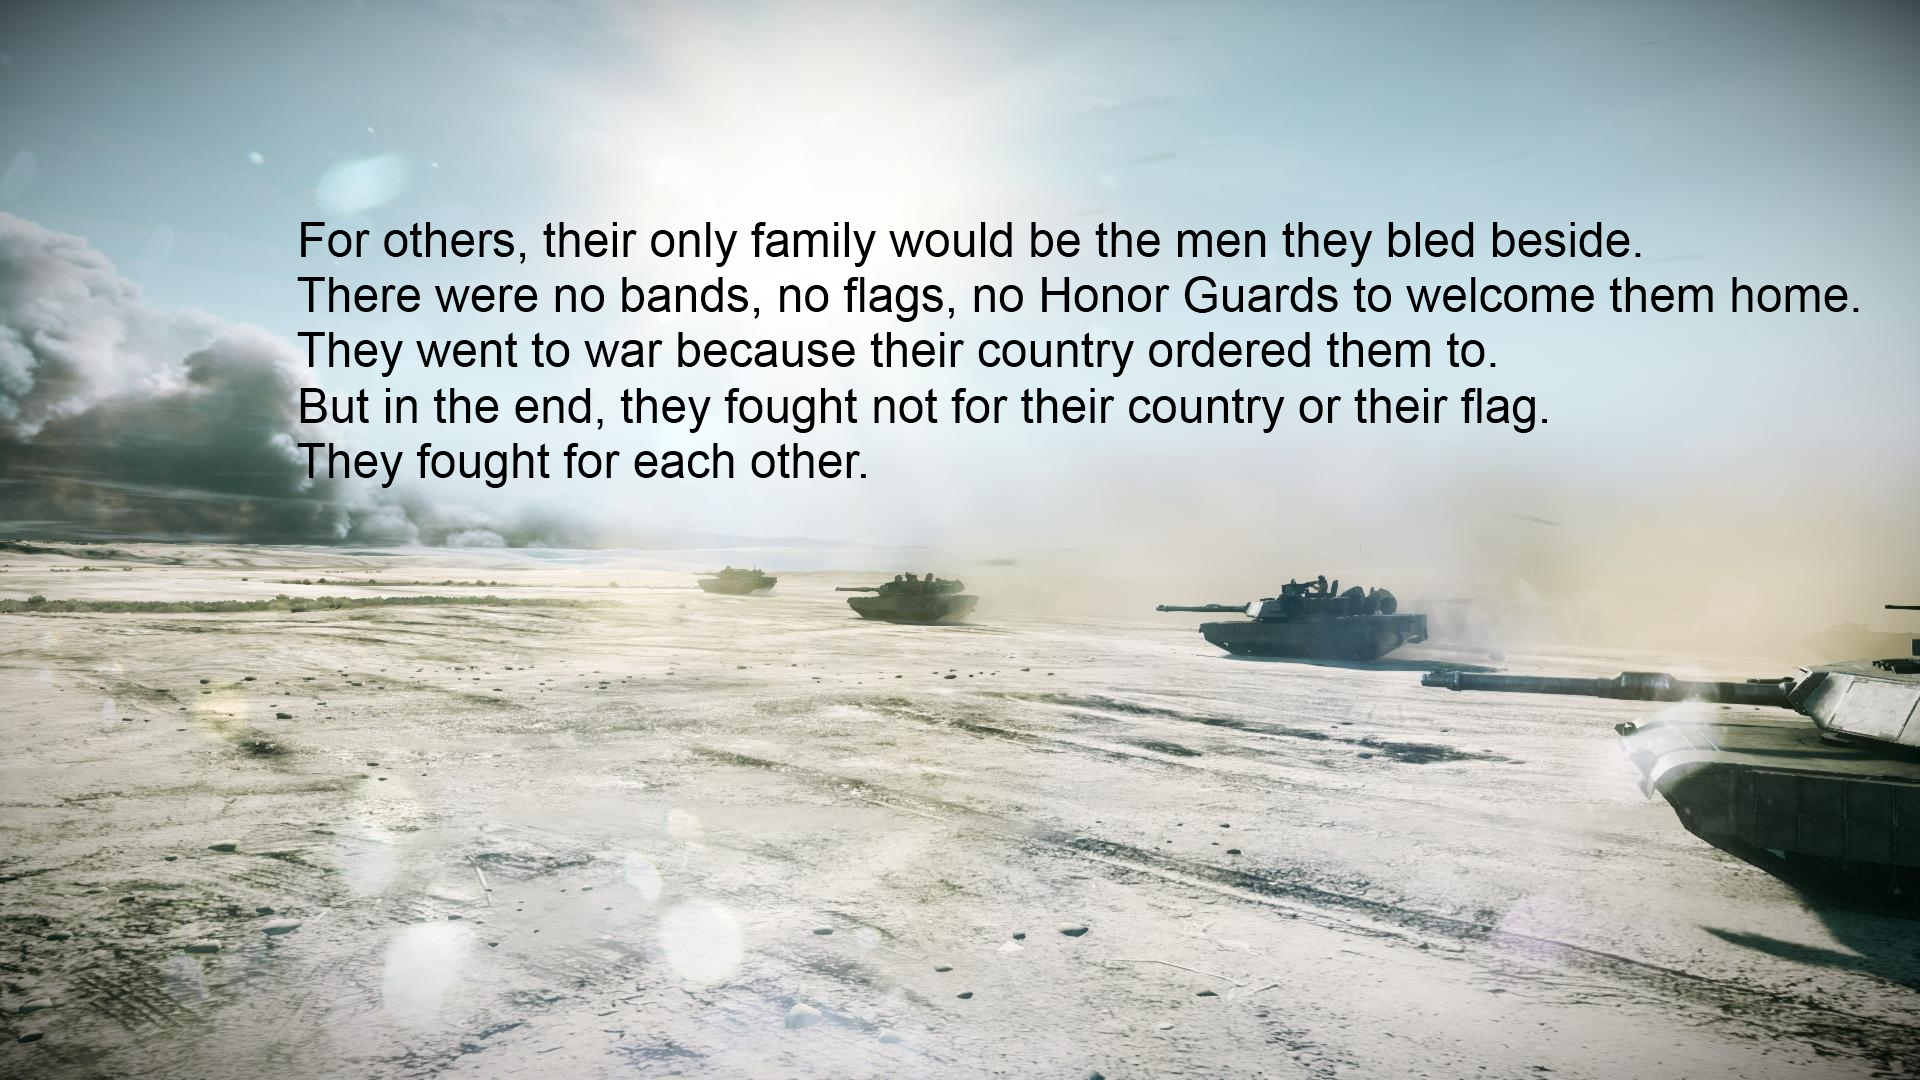 download soldiers quotes wallpaper - photo #15